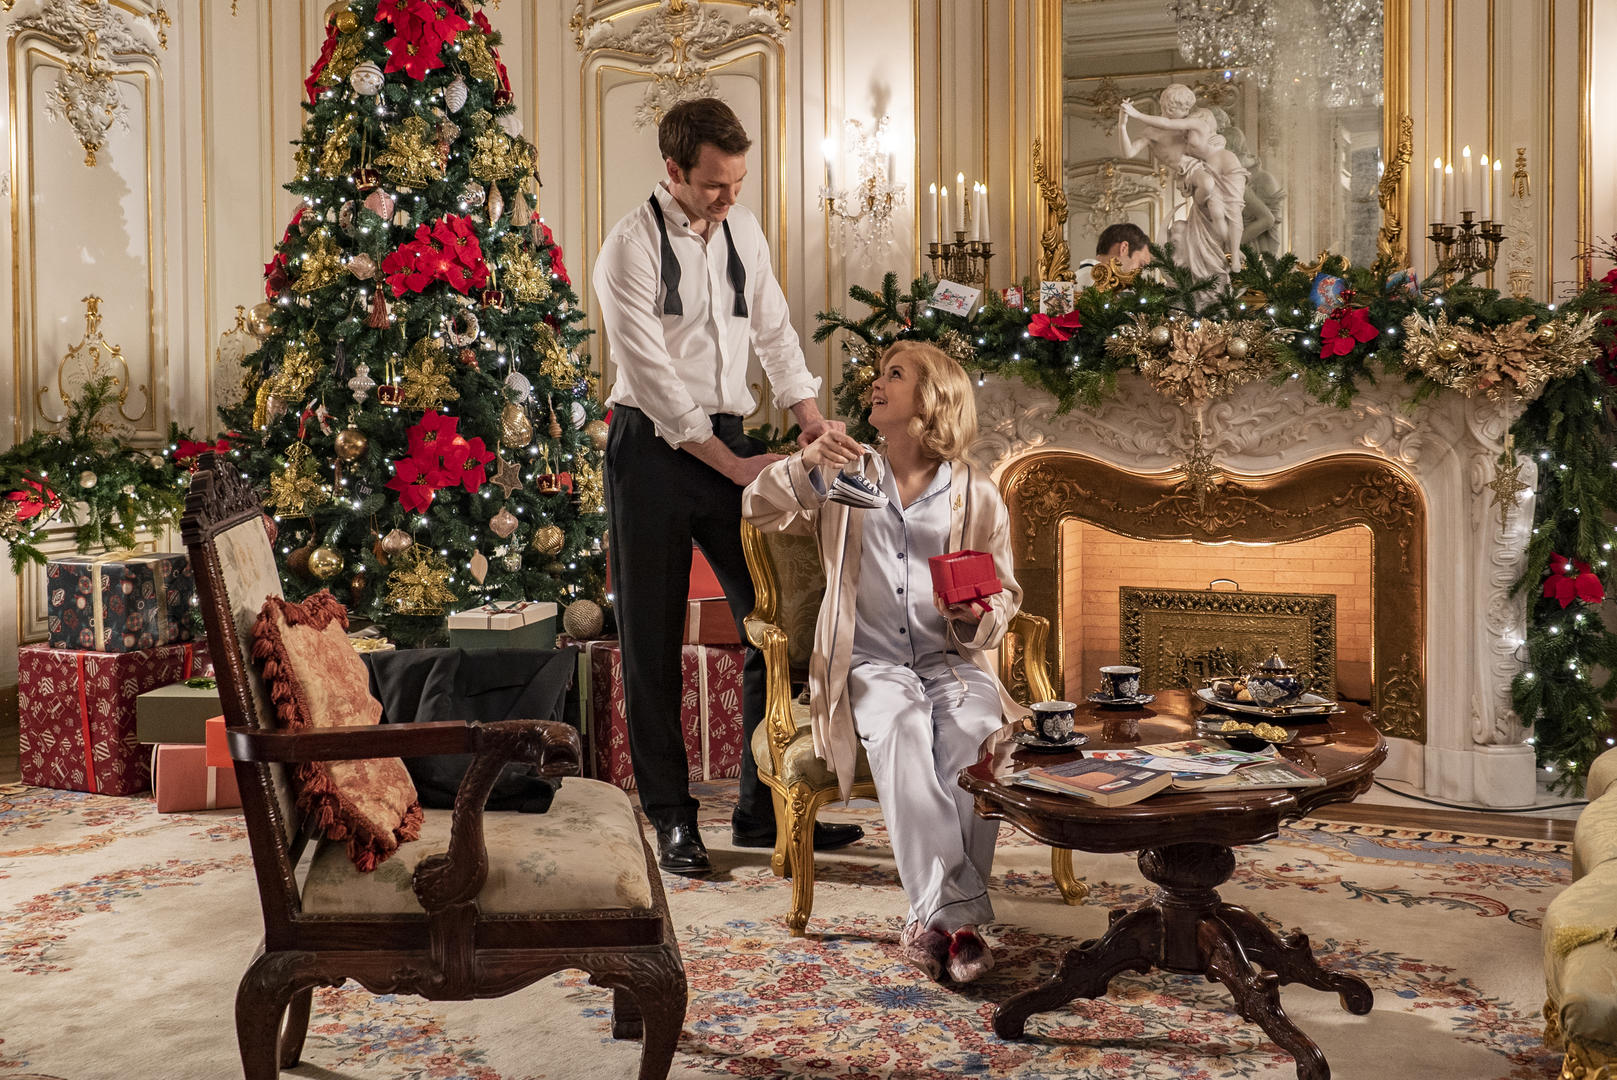 ben lamb and rose mciver in front of a christmas tree and heavily decorated mantel